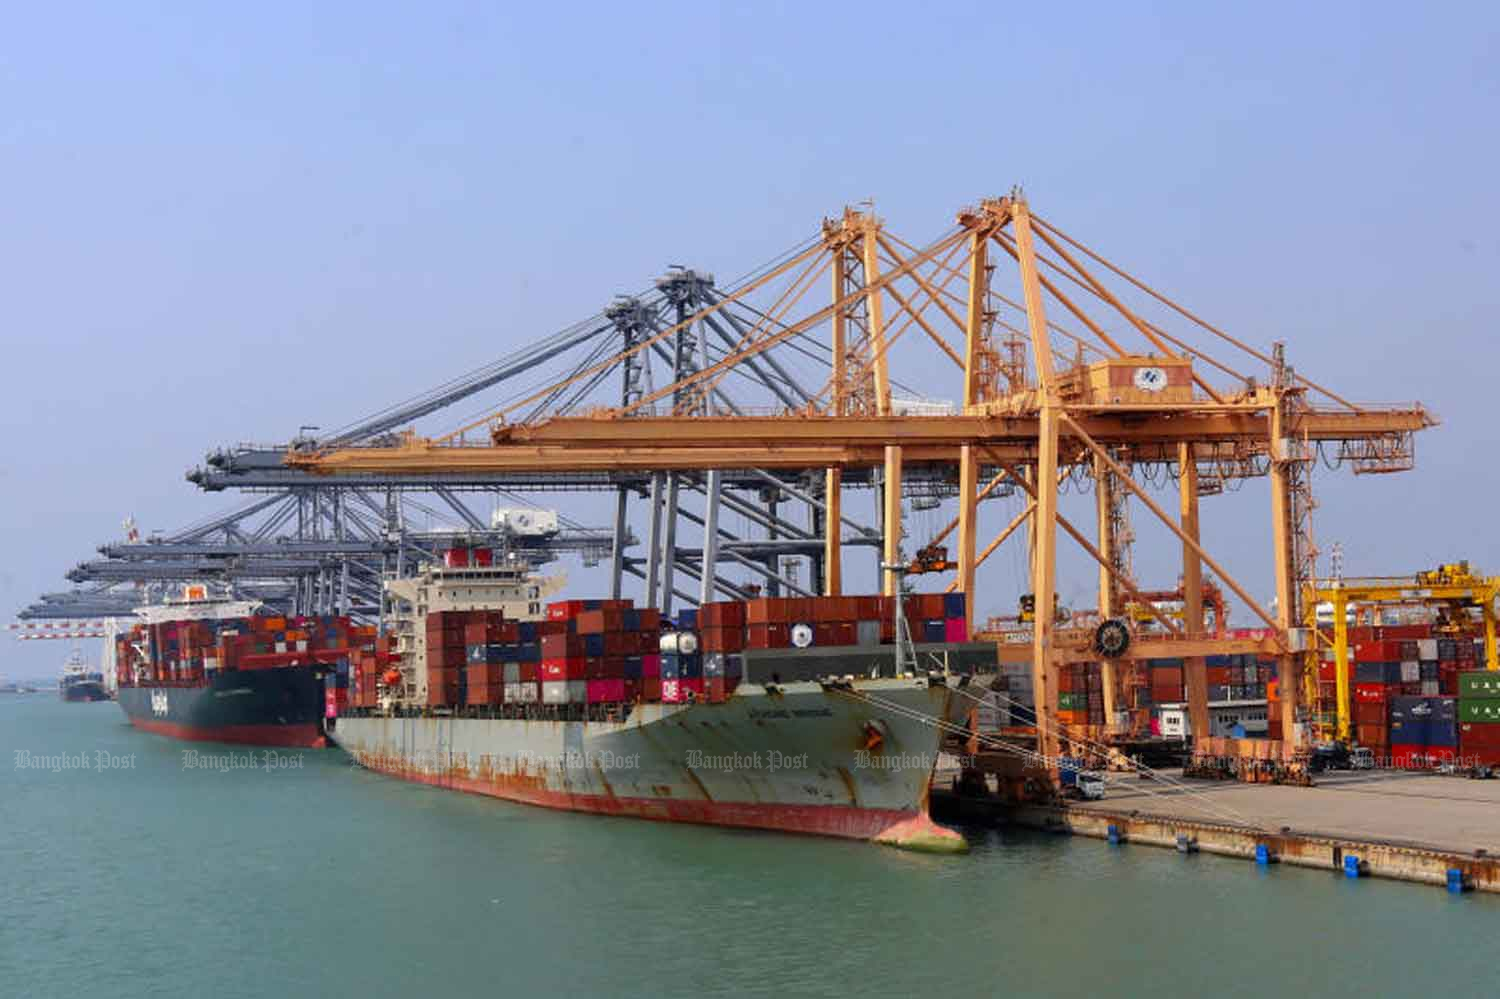 Container ships dock at Laem Chabang port in Chon Buri province. The Thai National Shippers' Council on Tuesday predicted exports would fall by 2.5-3.0% this year. (Bangkok Post file photo)